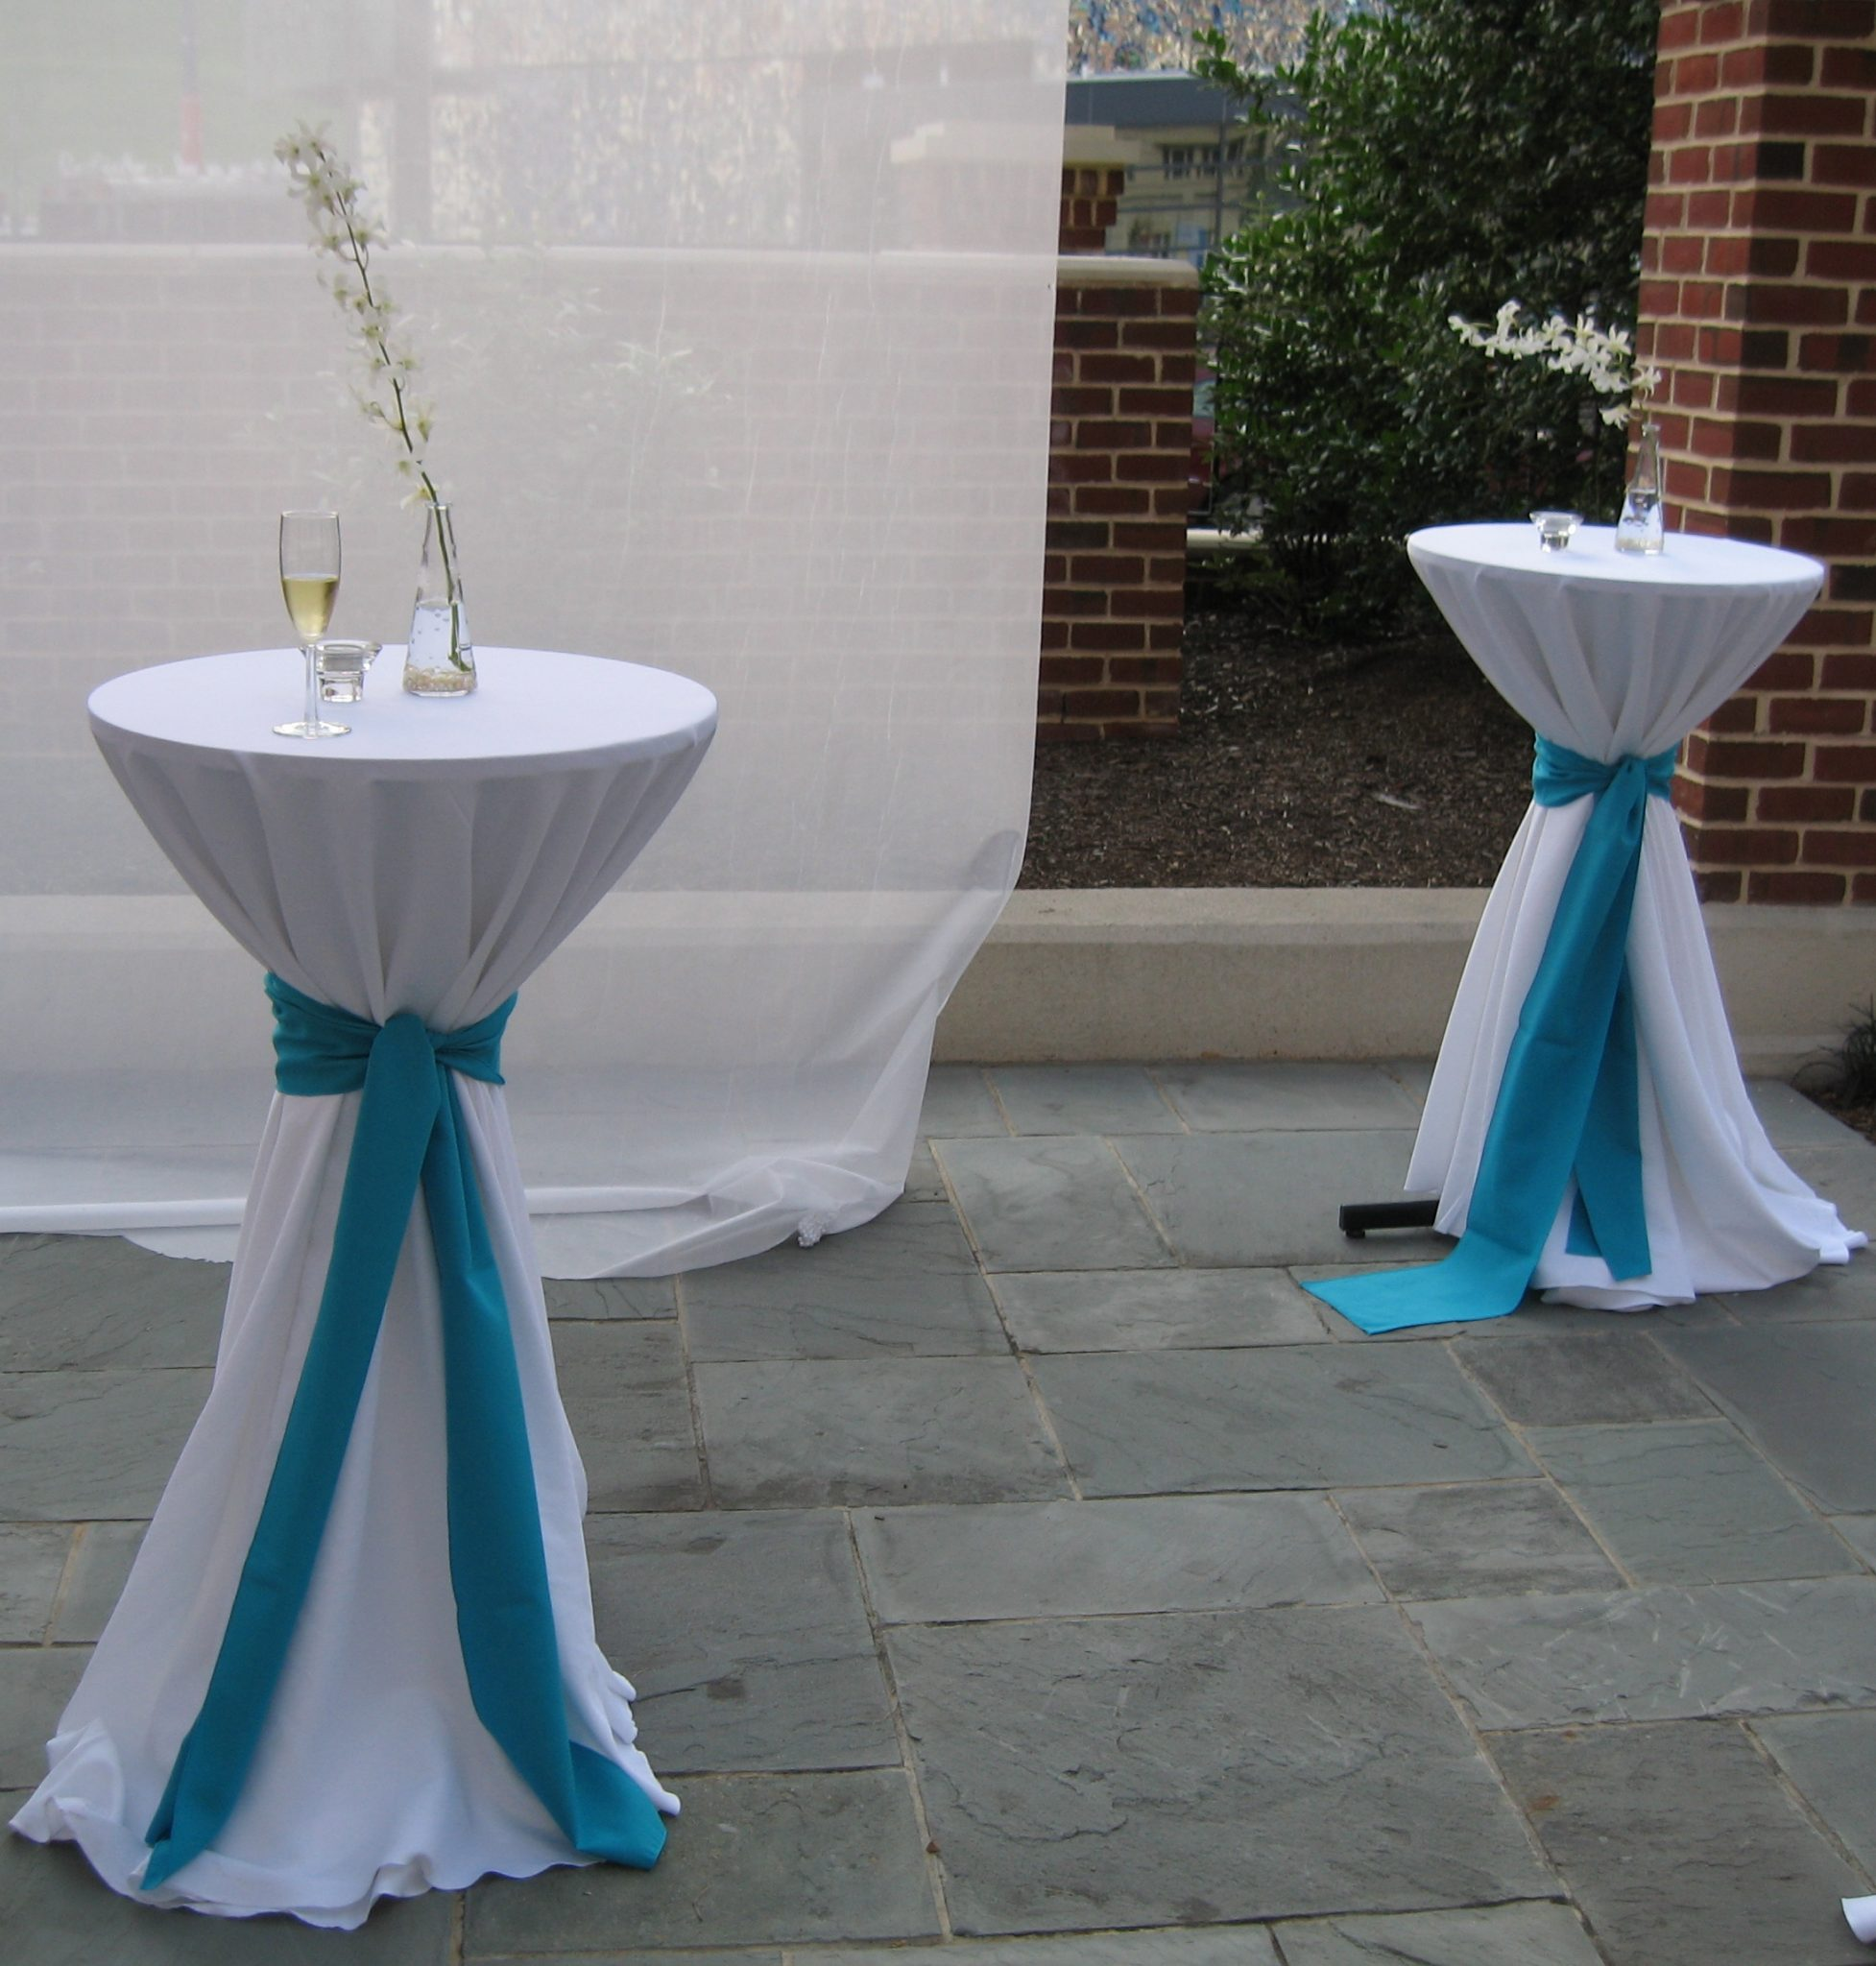 diy folding chair covers ikea bed wedding rentals & services – baltimore's best events